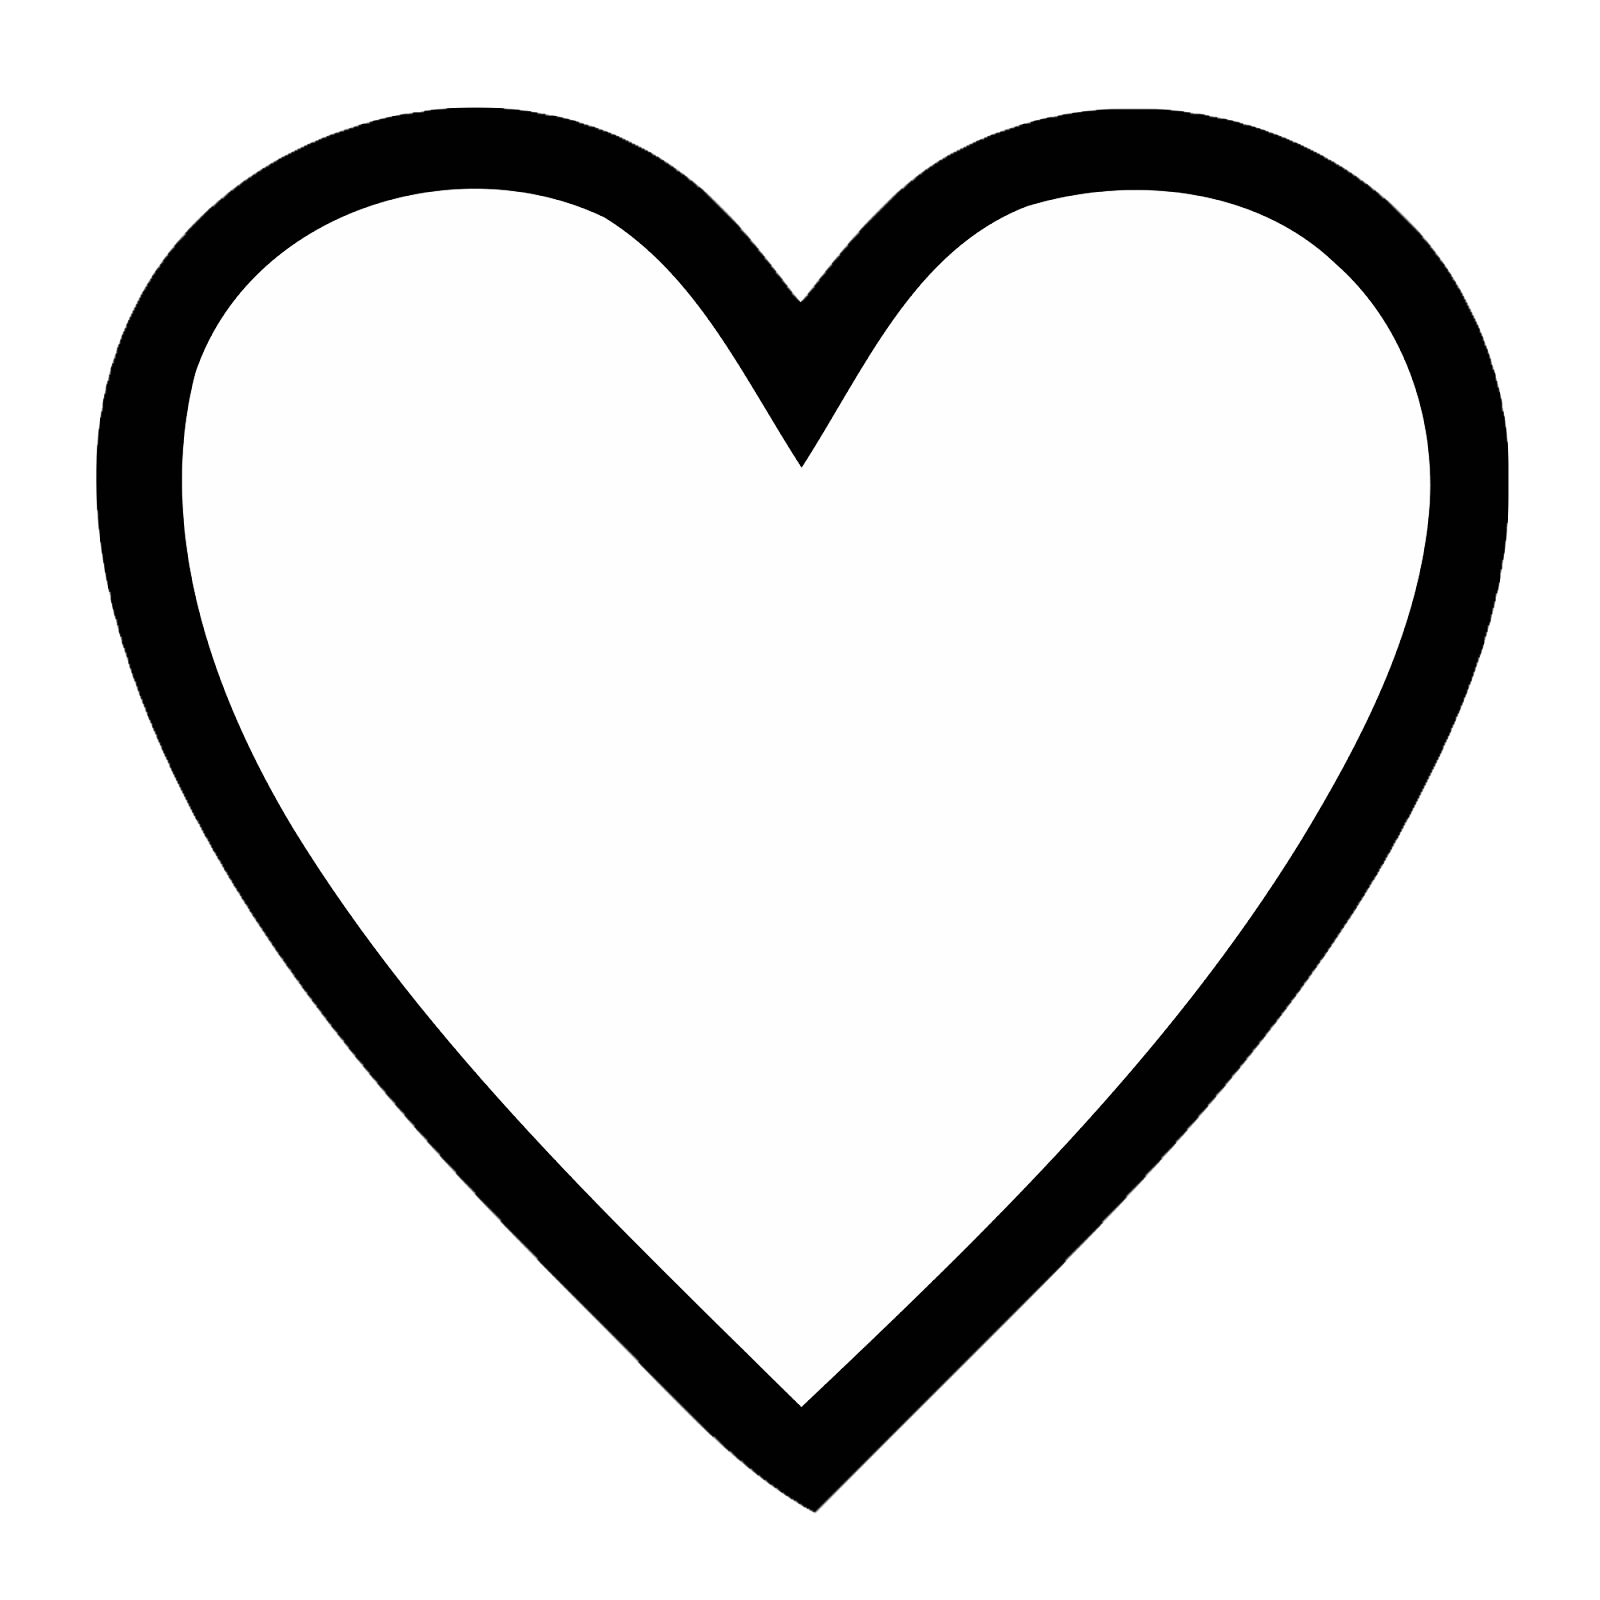 Free hearts download clip. Drawing wallpapers heart clipart download